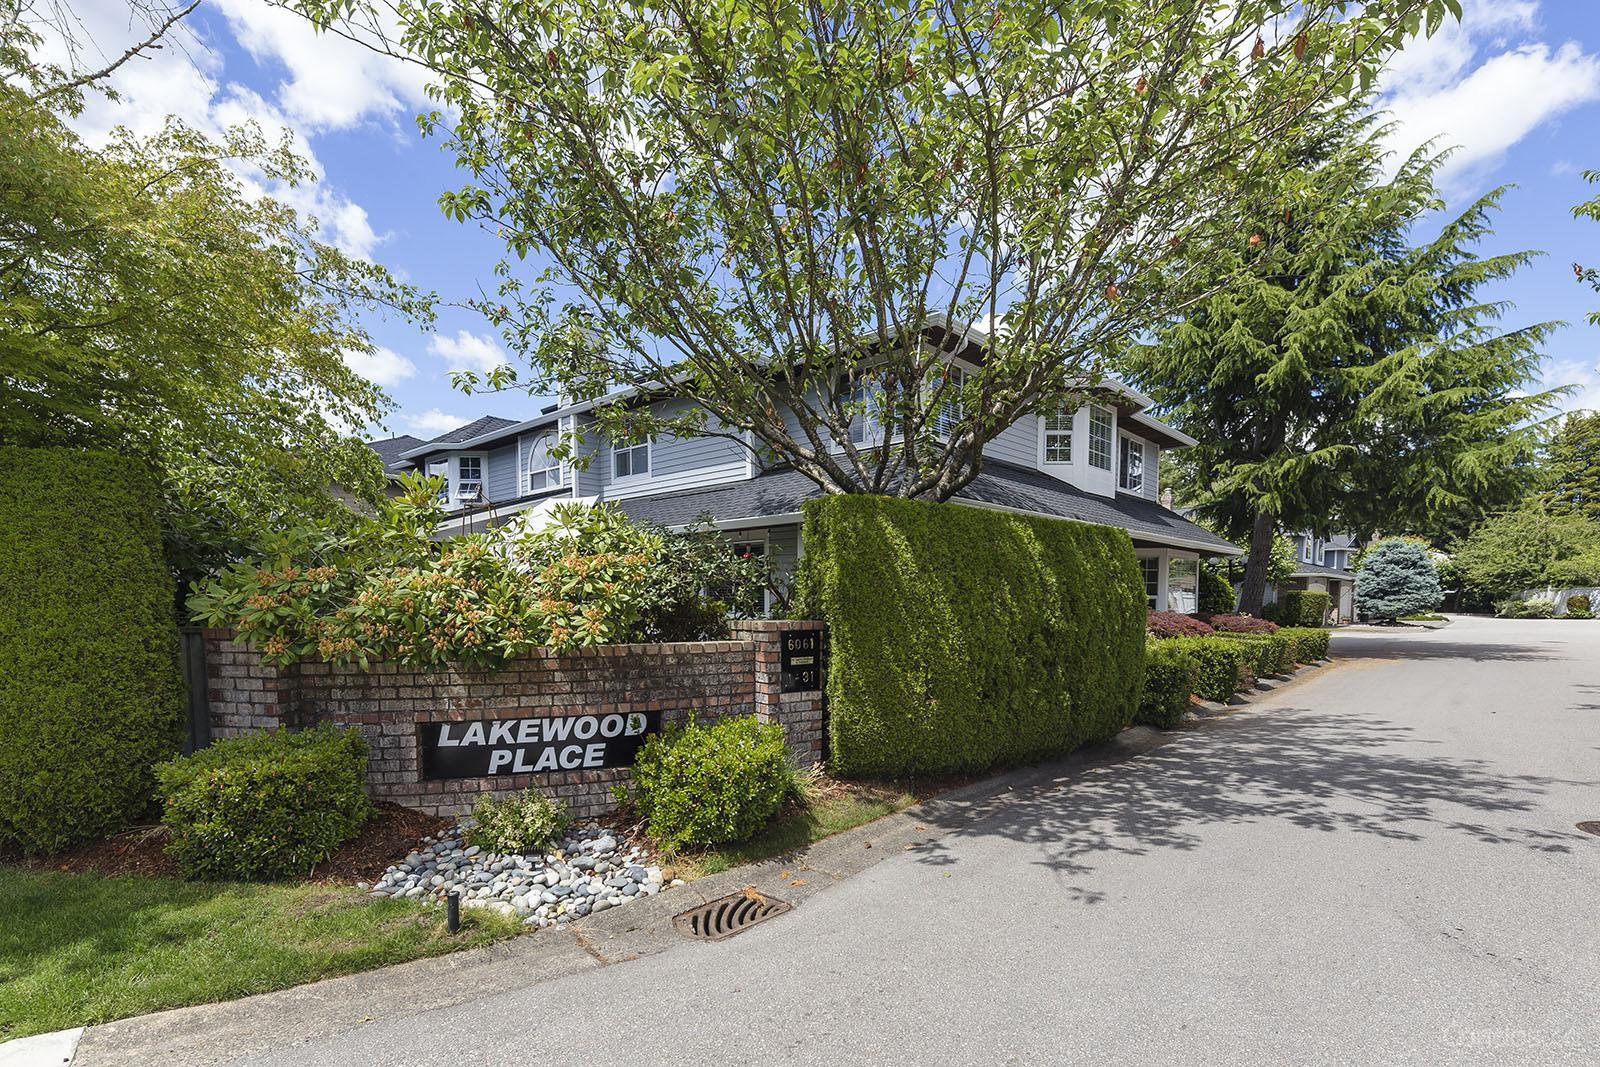 Lakewood Place at 6061 Boundary Dr W, Surrey 0